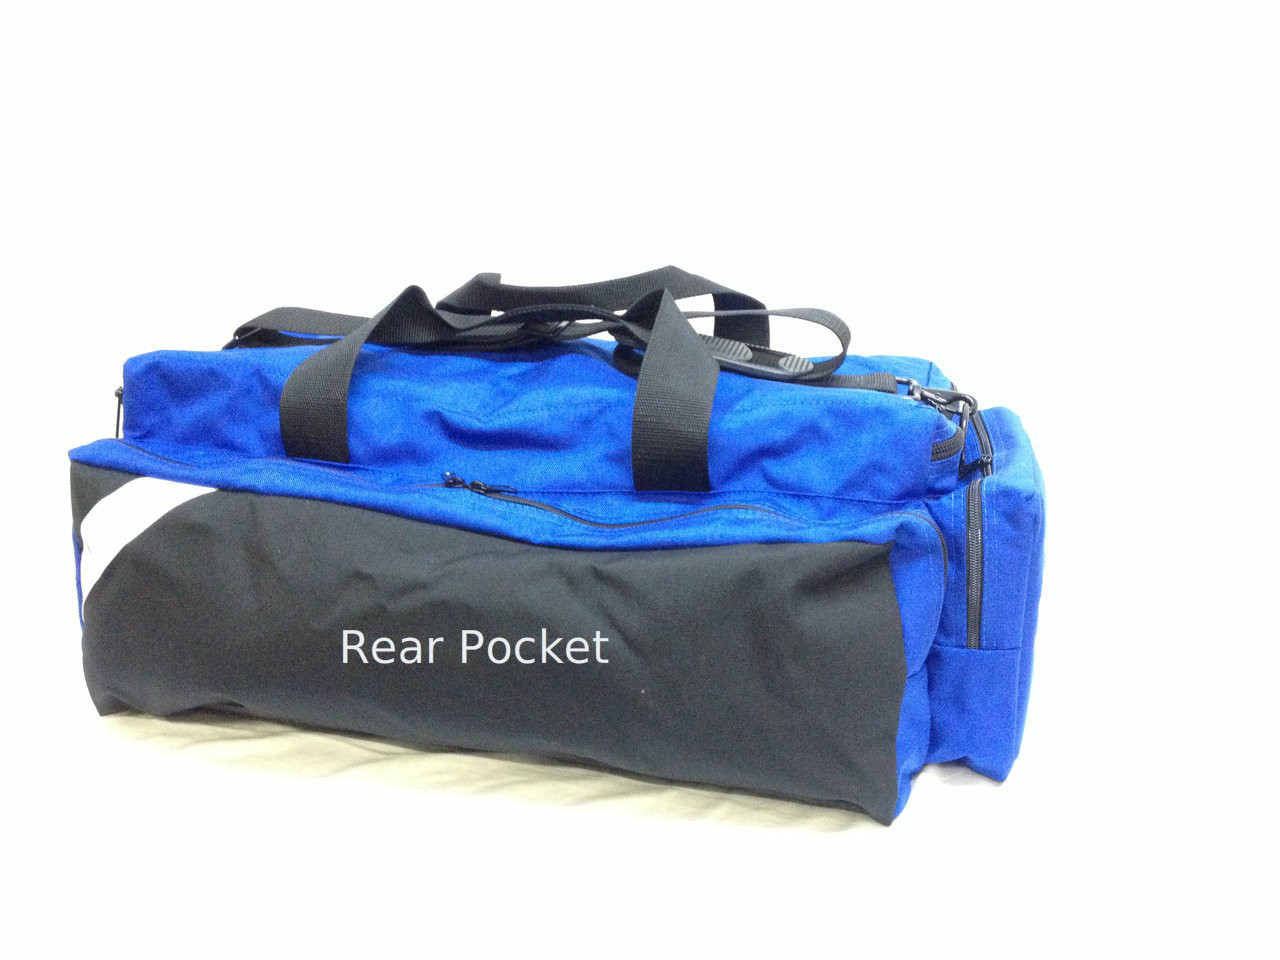 Dual Front Pocket Airpack - Rear Pocket